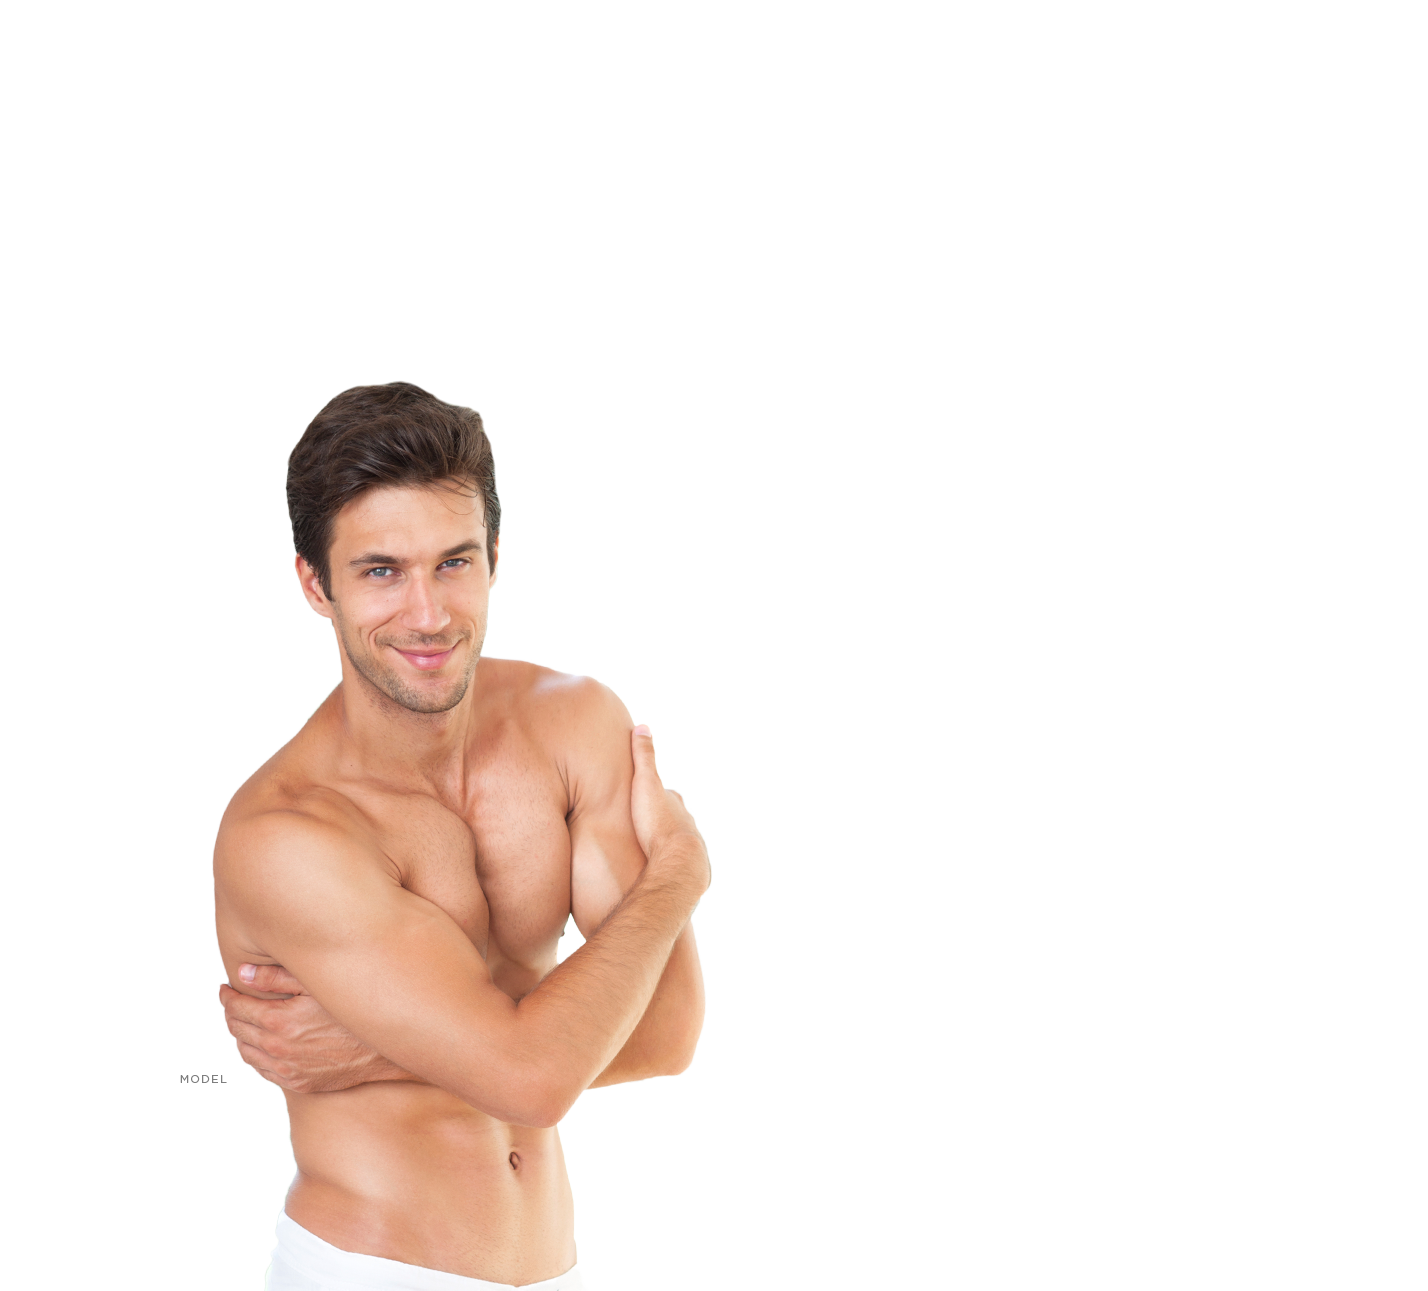 gynecomastia surgery granite bay